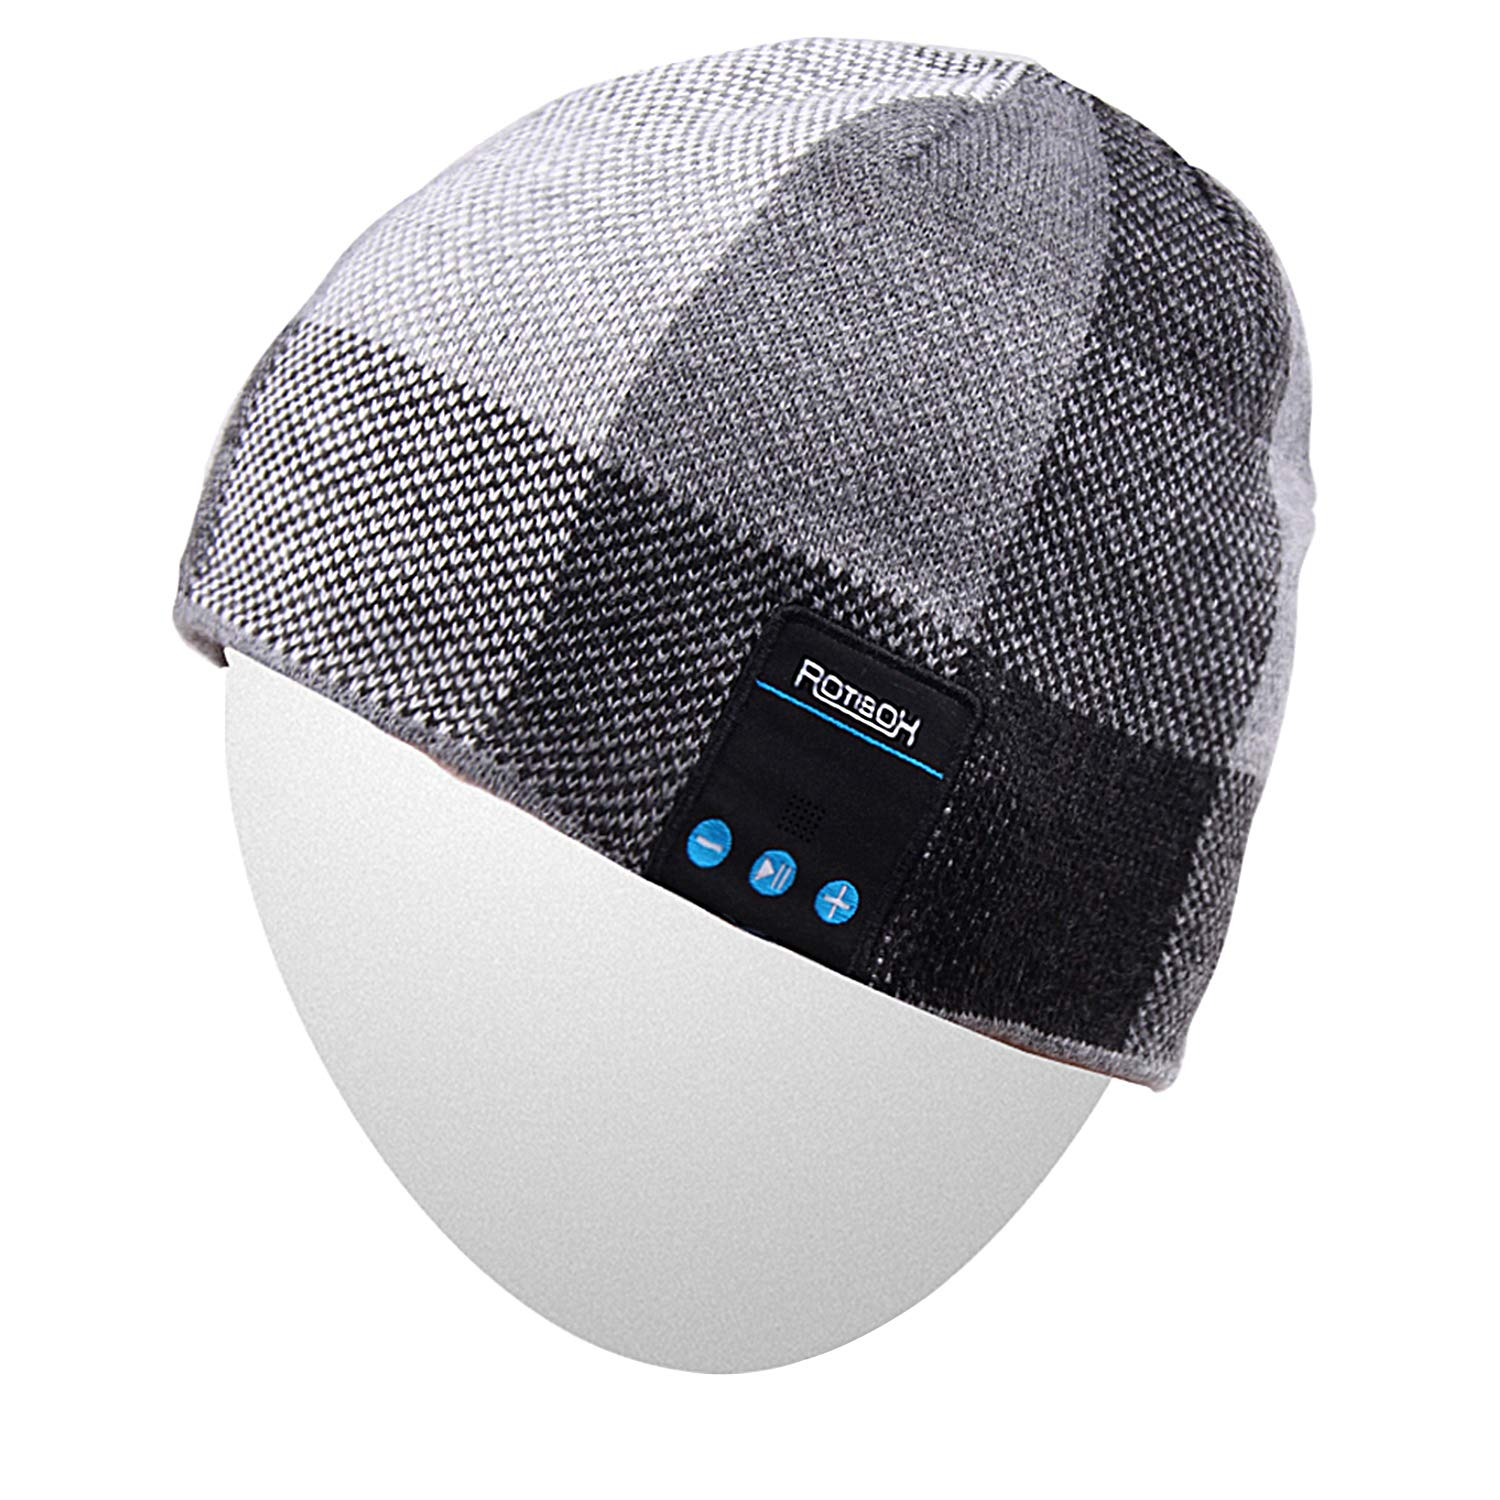 Rotibox Bluetooth Beanie Hat Wireless Headphone for Outdoor Sports Xmas Gifts